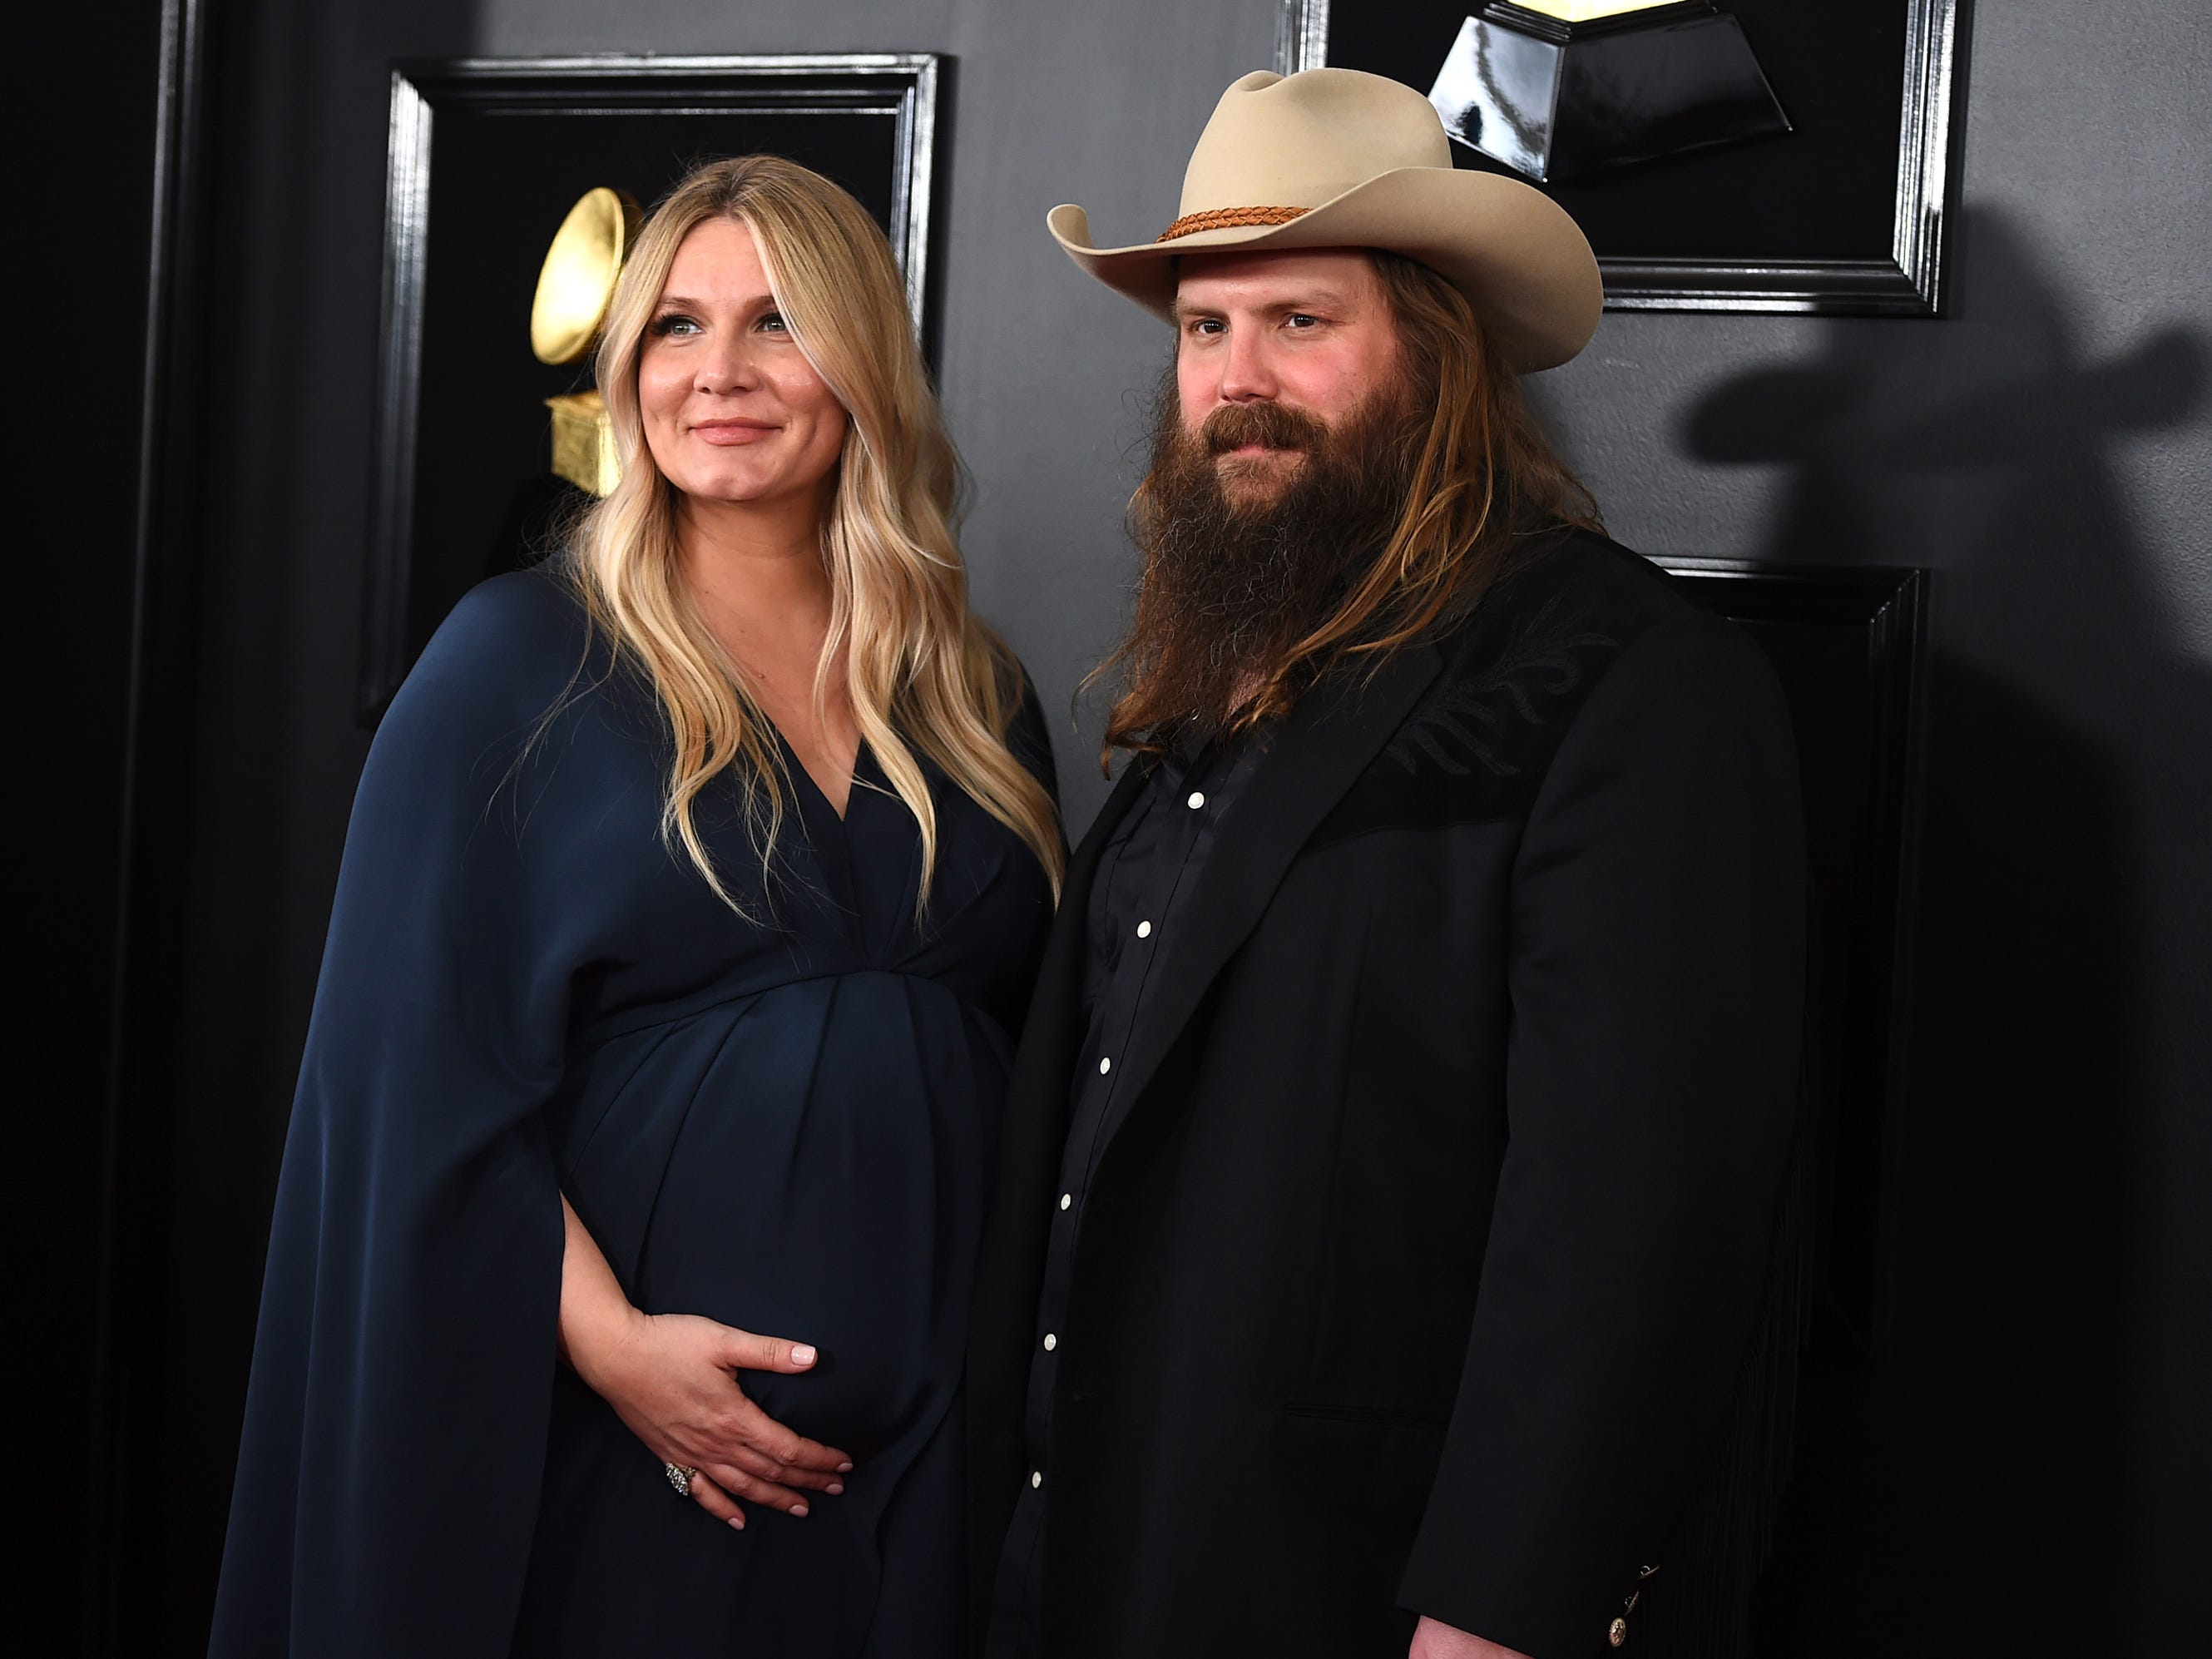 Morgane Stapleton, left, and Chris Stapleton arrive at the 61st annual Grammy Awards at the Staples Center on Sunday, Feb. 10, 2019, in Los Angeles.